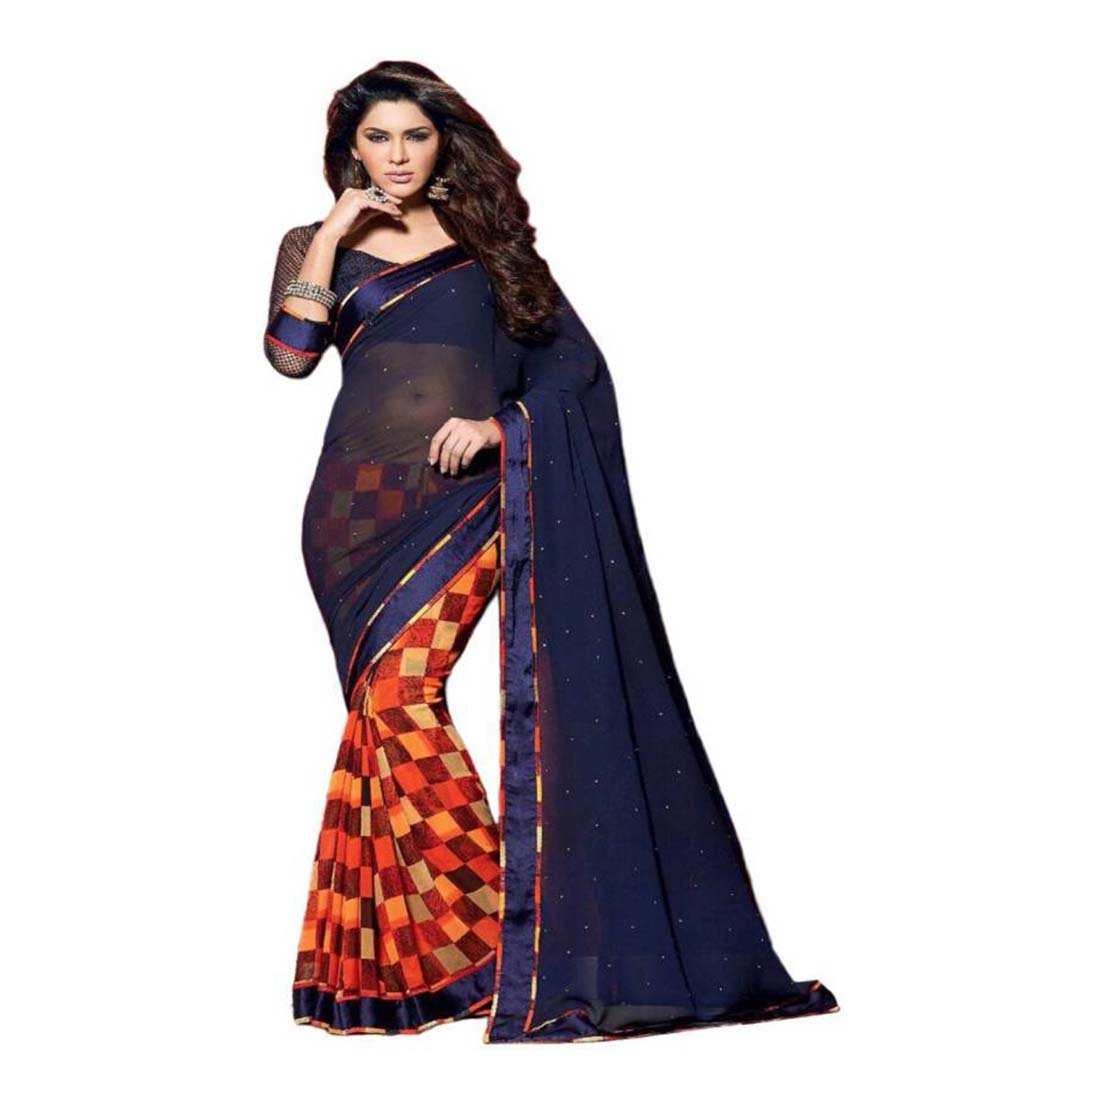 Striped Daily Wear Georgette Saree (Blue) Indian Handicrfats Export FKSAR-01236